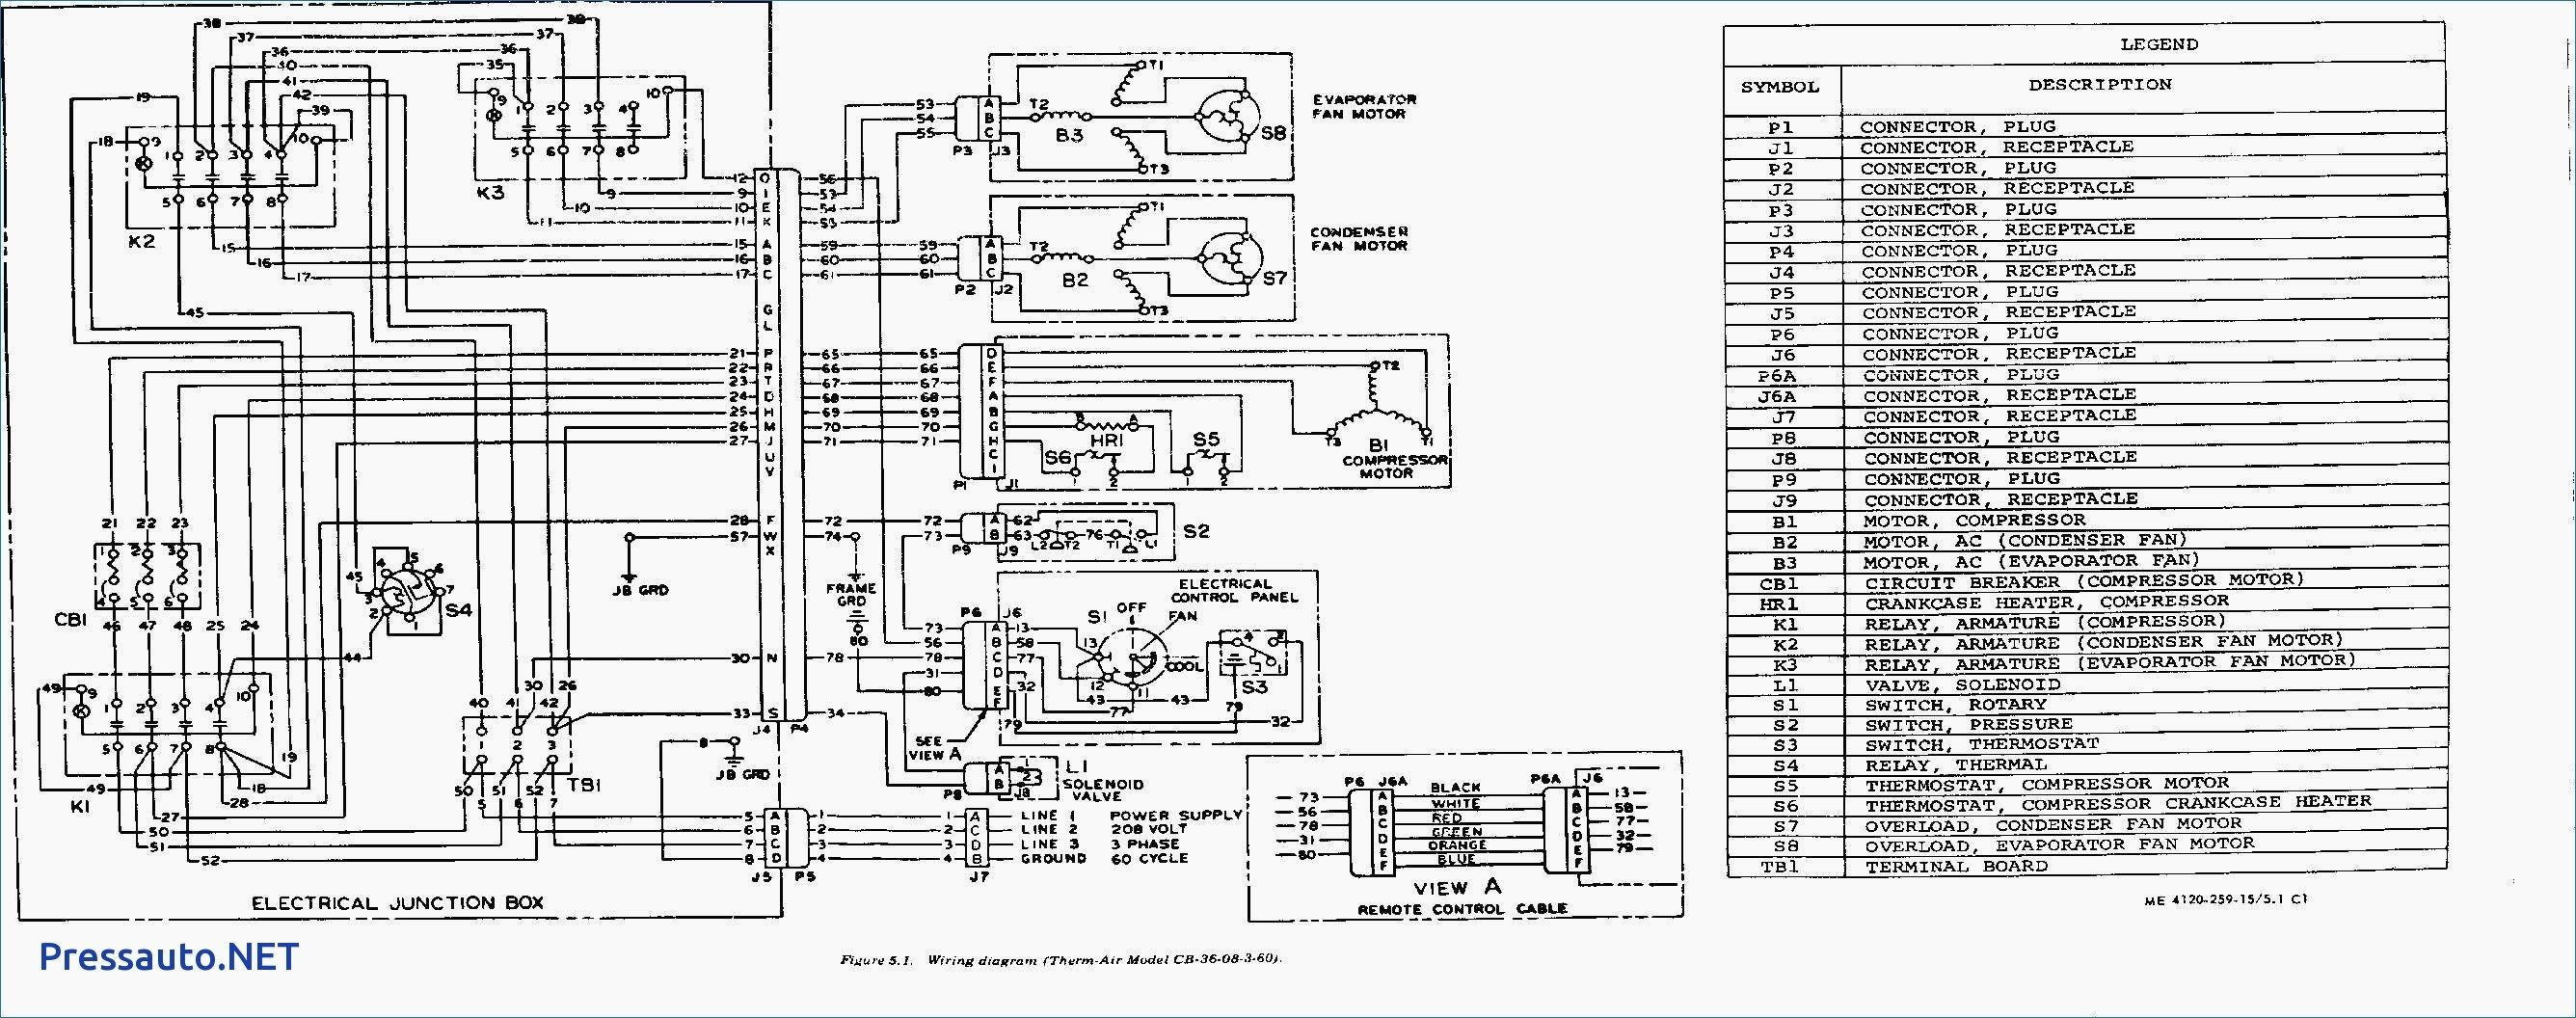 Trane Wiring Diagram Thoritsolutions Com And Rooftop Unit On Trane Pertaining To Trane Wiring Diagram Diagram Trane Thermostat Wiring